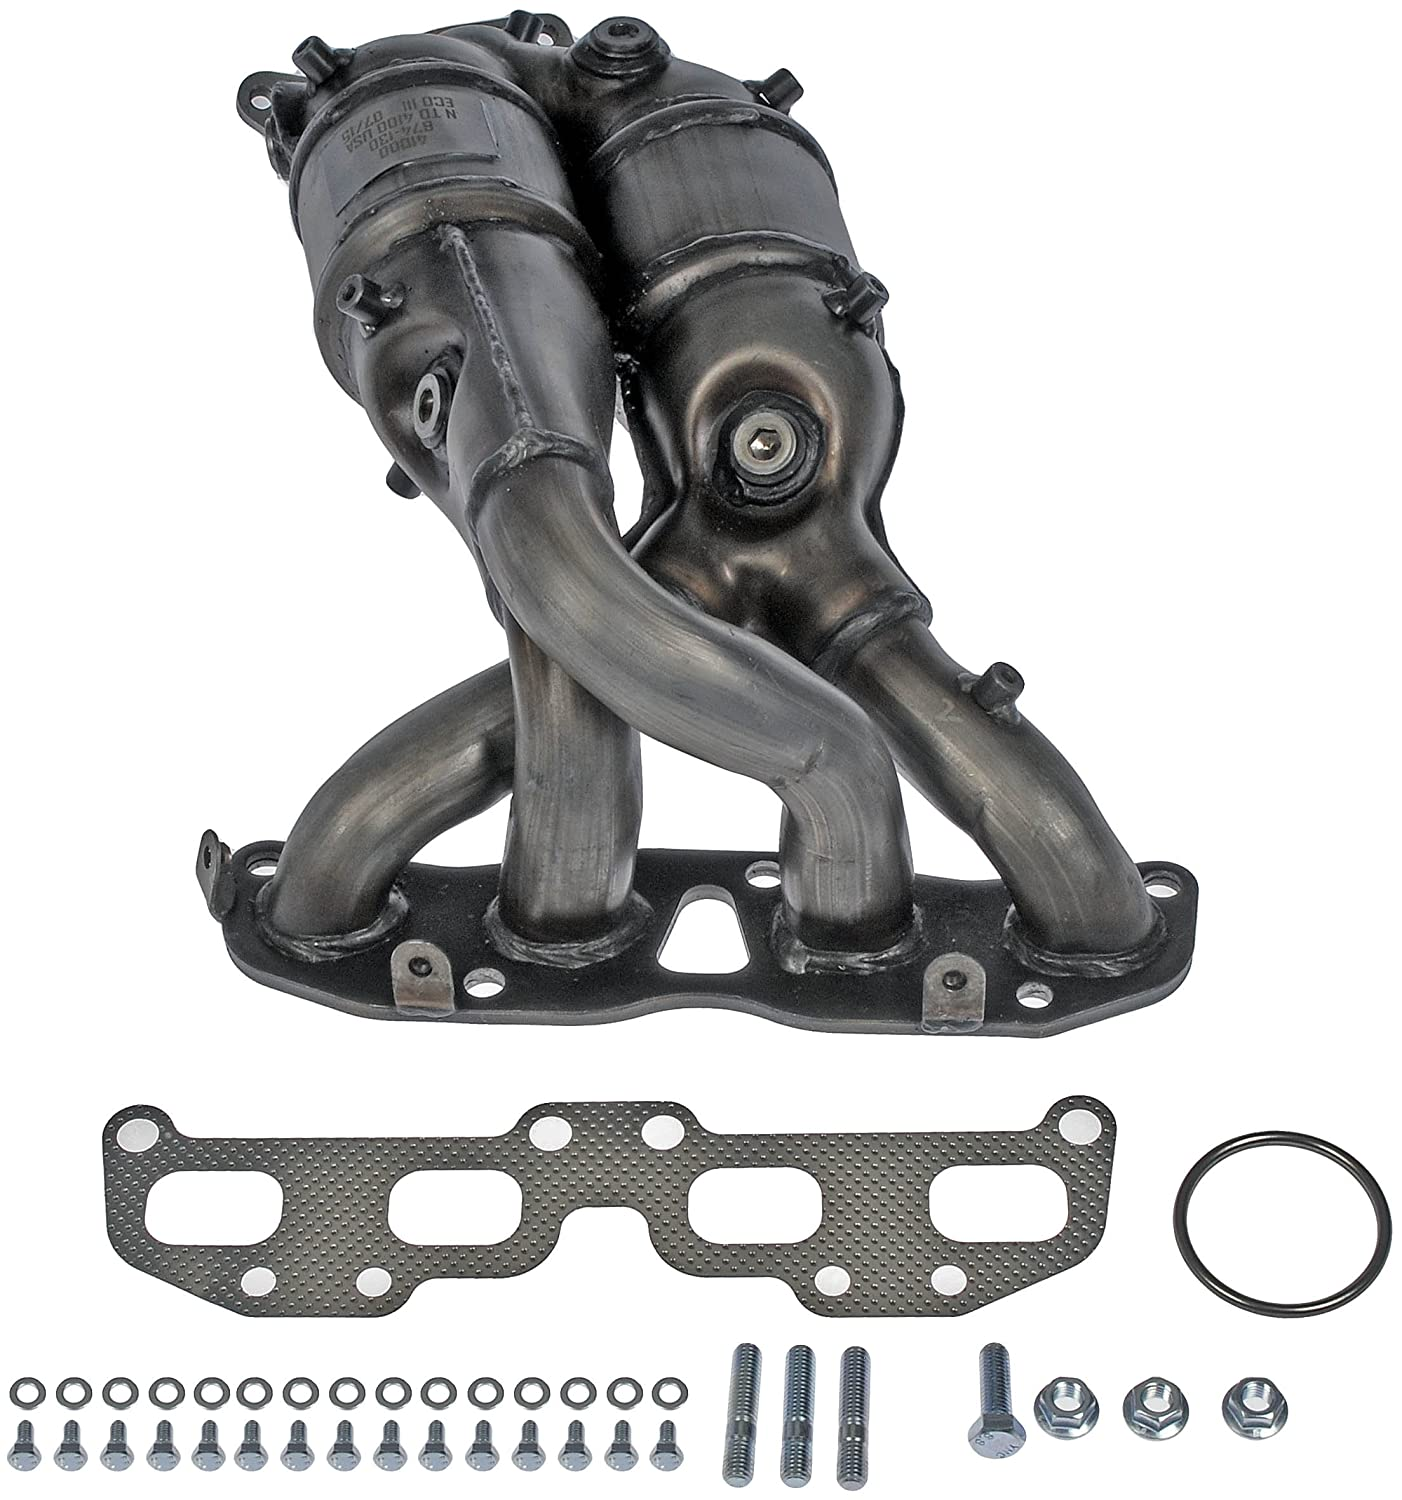 Dorman 674-470 Exhaust Manifold Kit